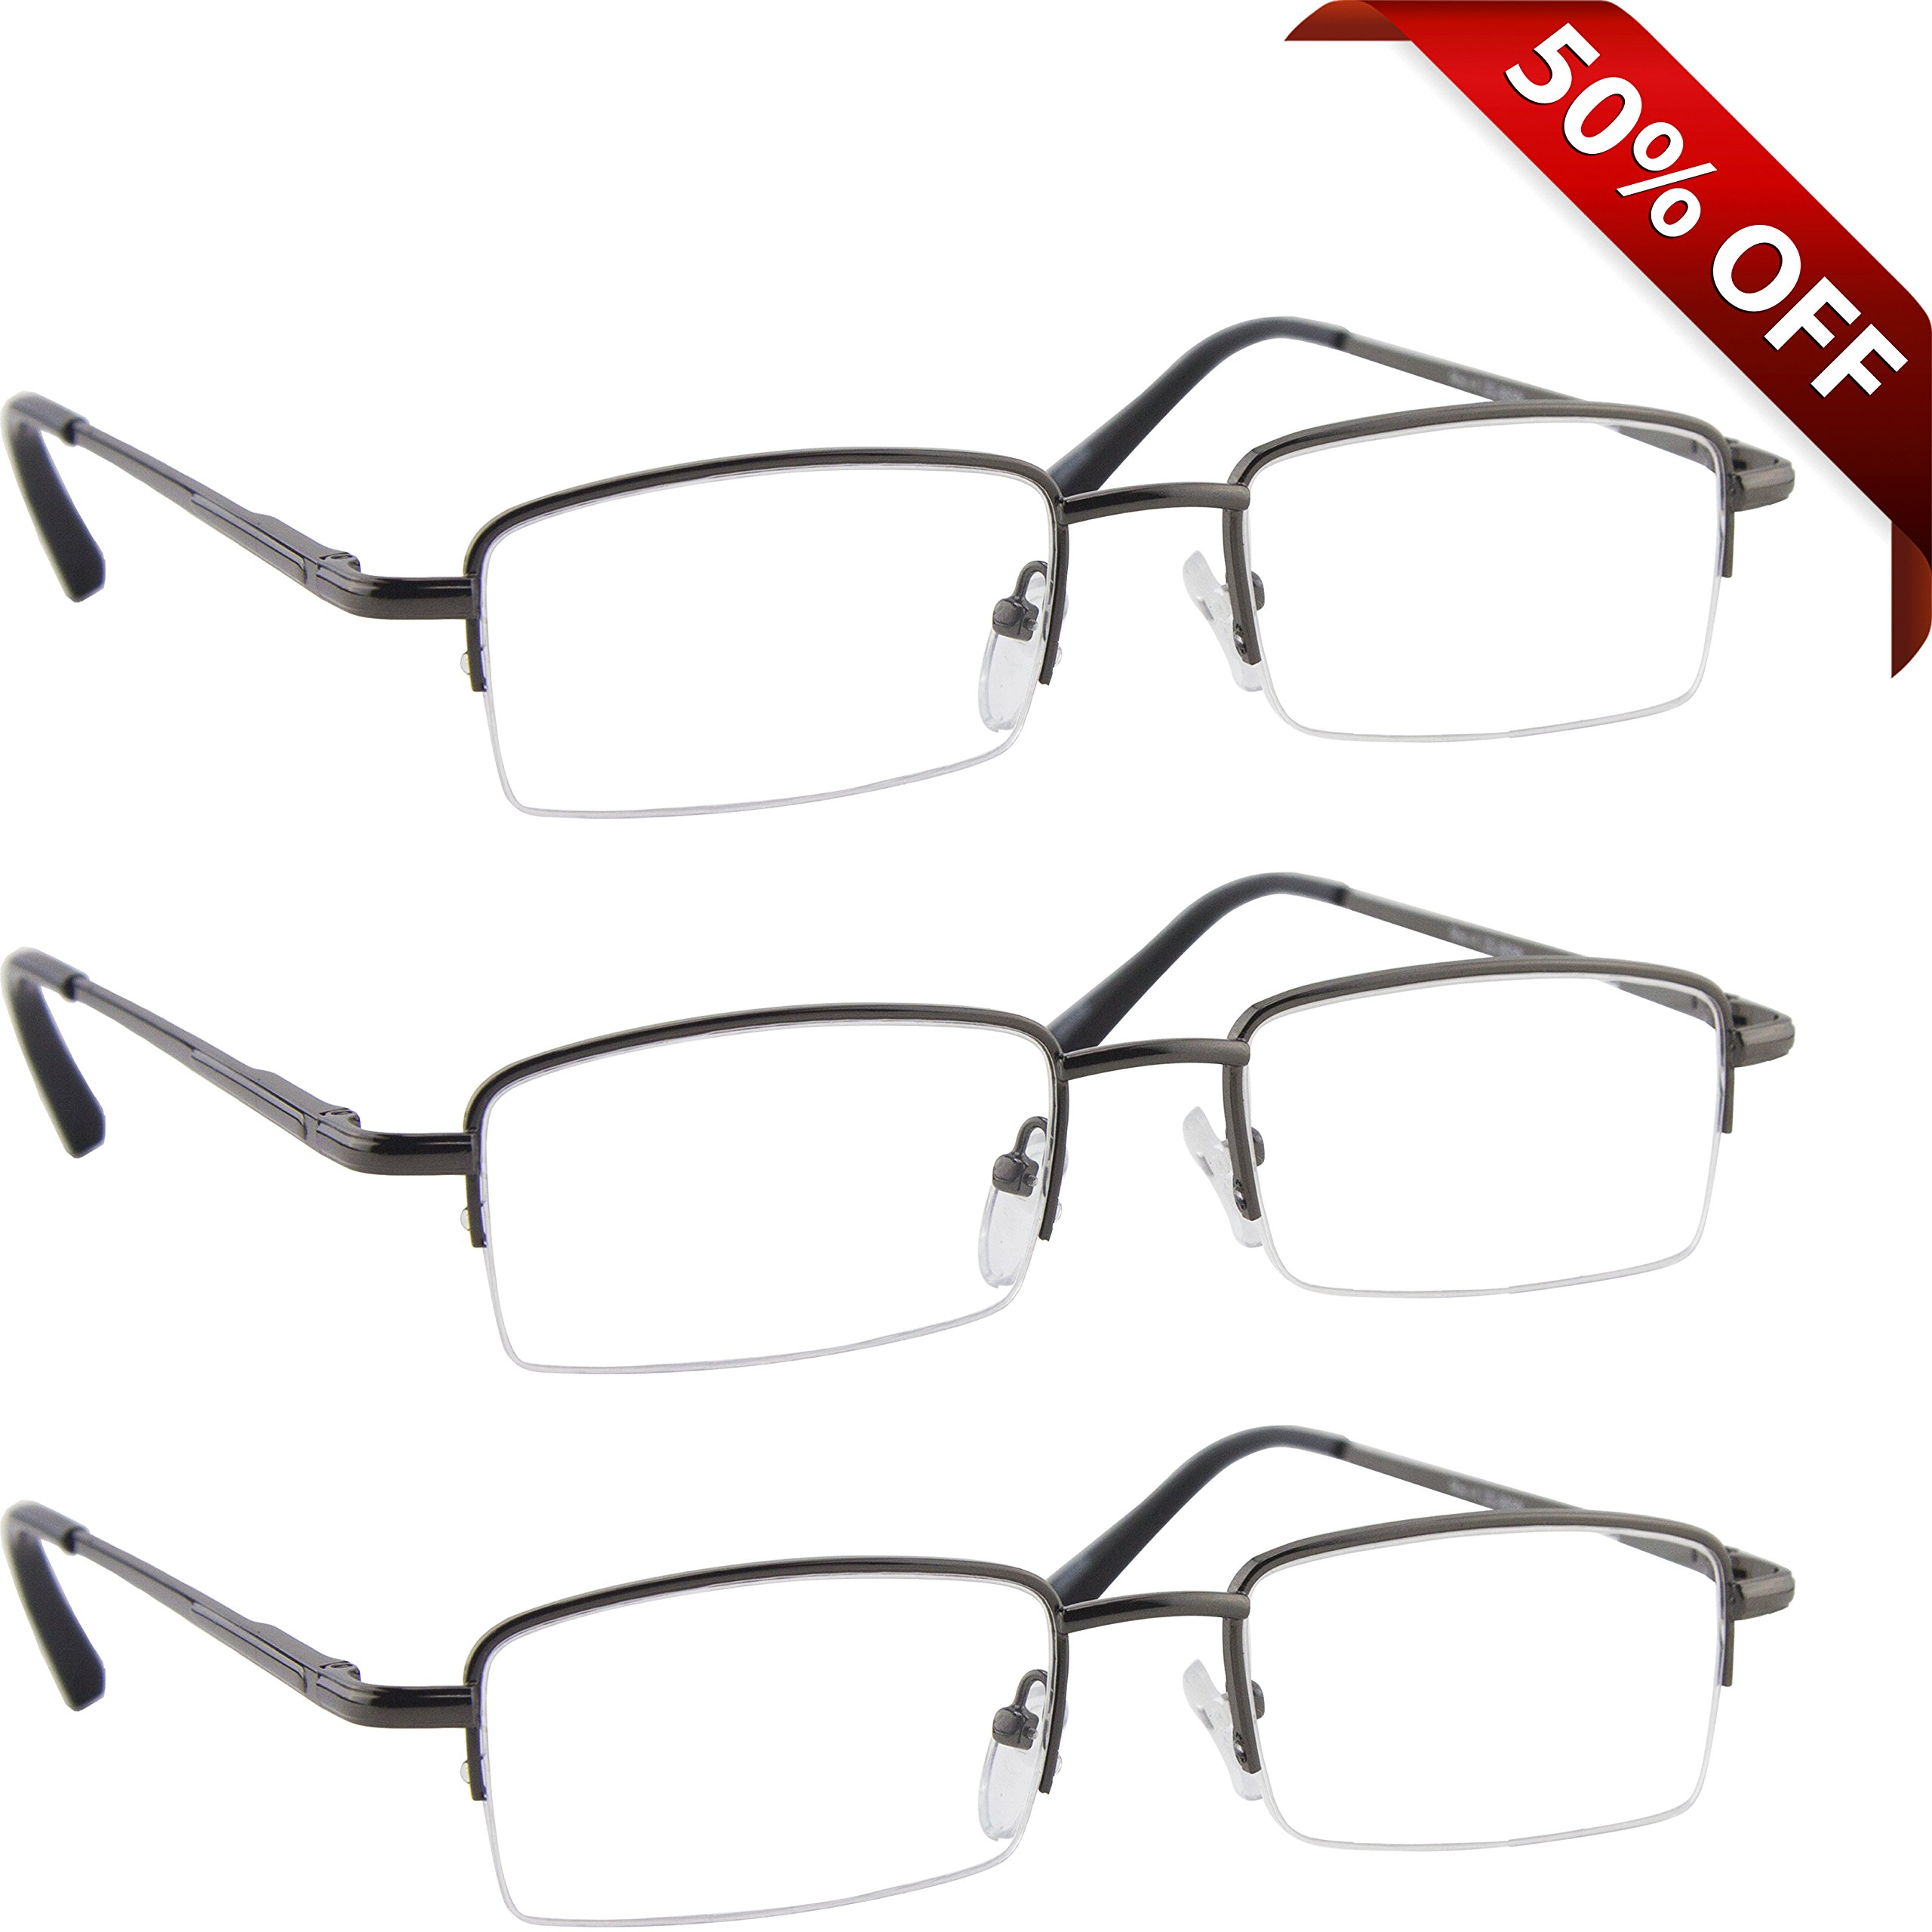 Reading Glasses Best 3 Pack Gunmetal for Men and Women Have a Stylish Look and Crystal Clear Vision When You Need It! Comfort Spring Arms & Dura-Tight Screws 100% Guarantee +2.50